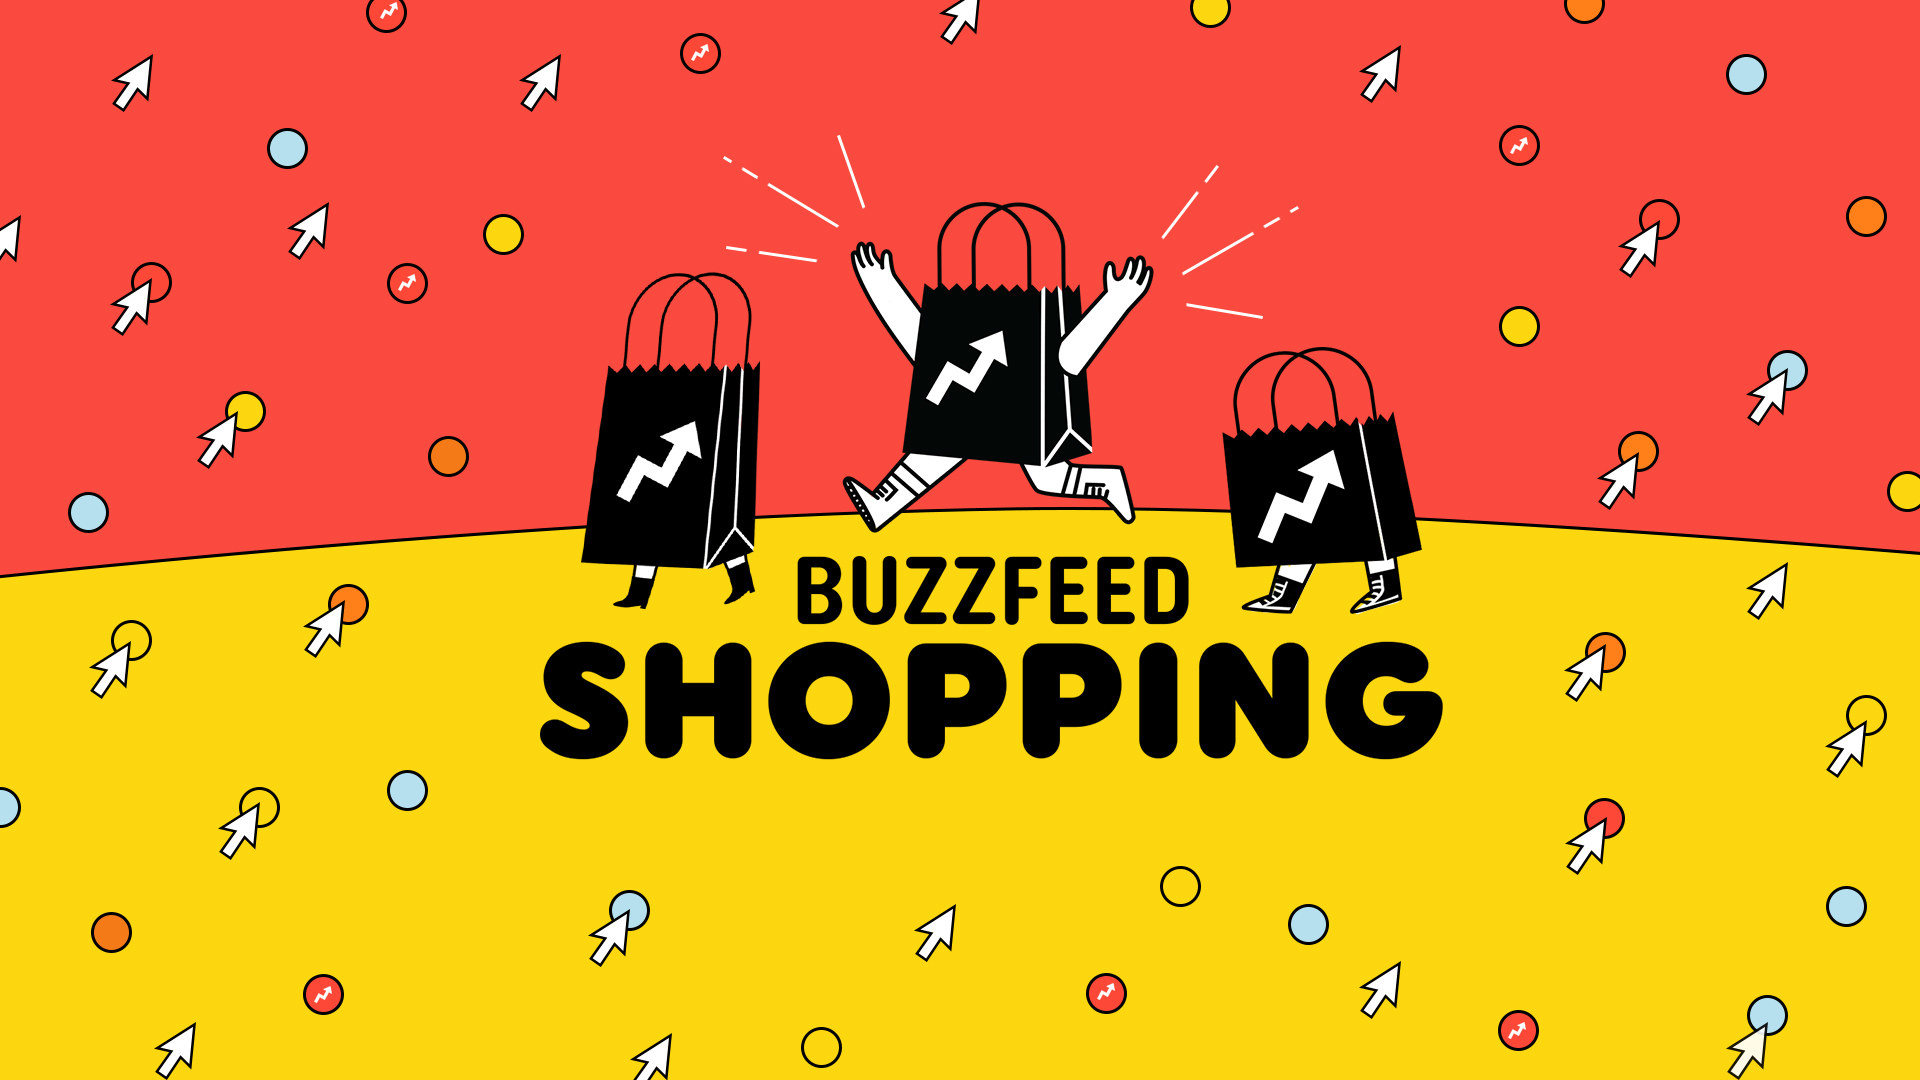 A BuzzFeed Shopping logo featuring illustrated shopping bags with legs